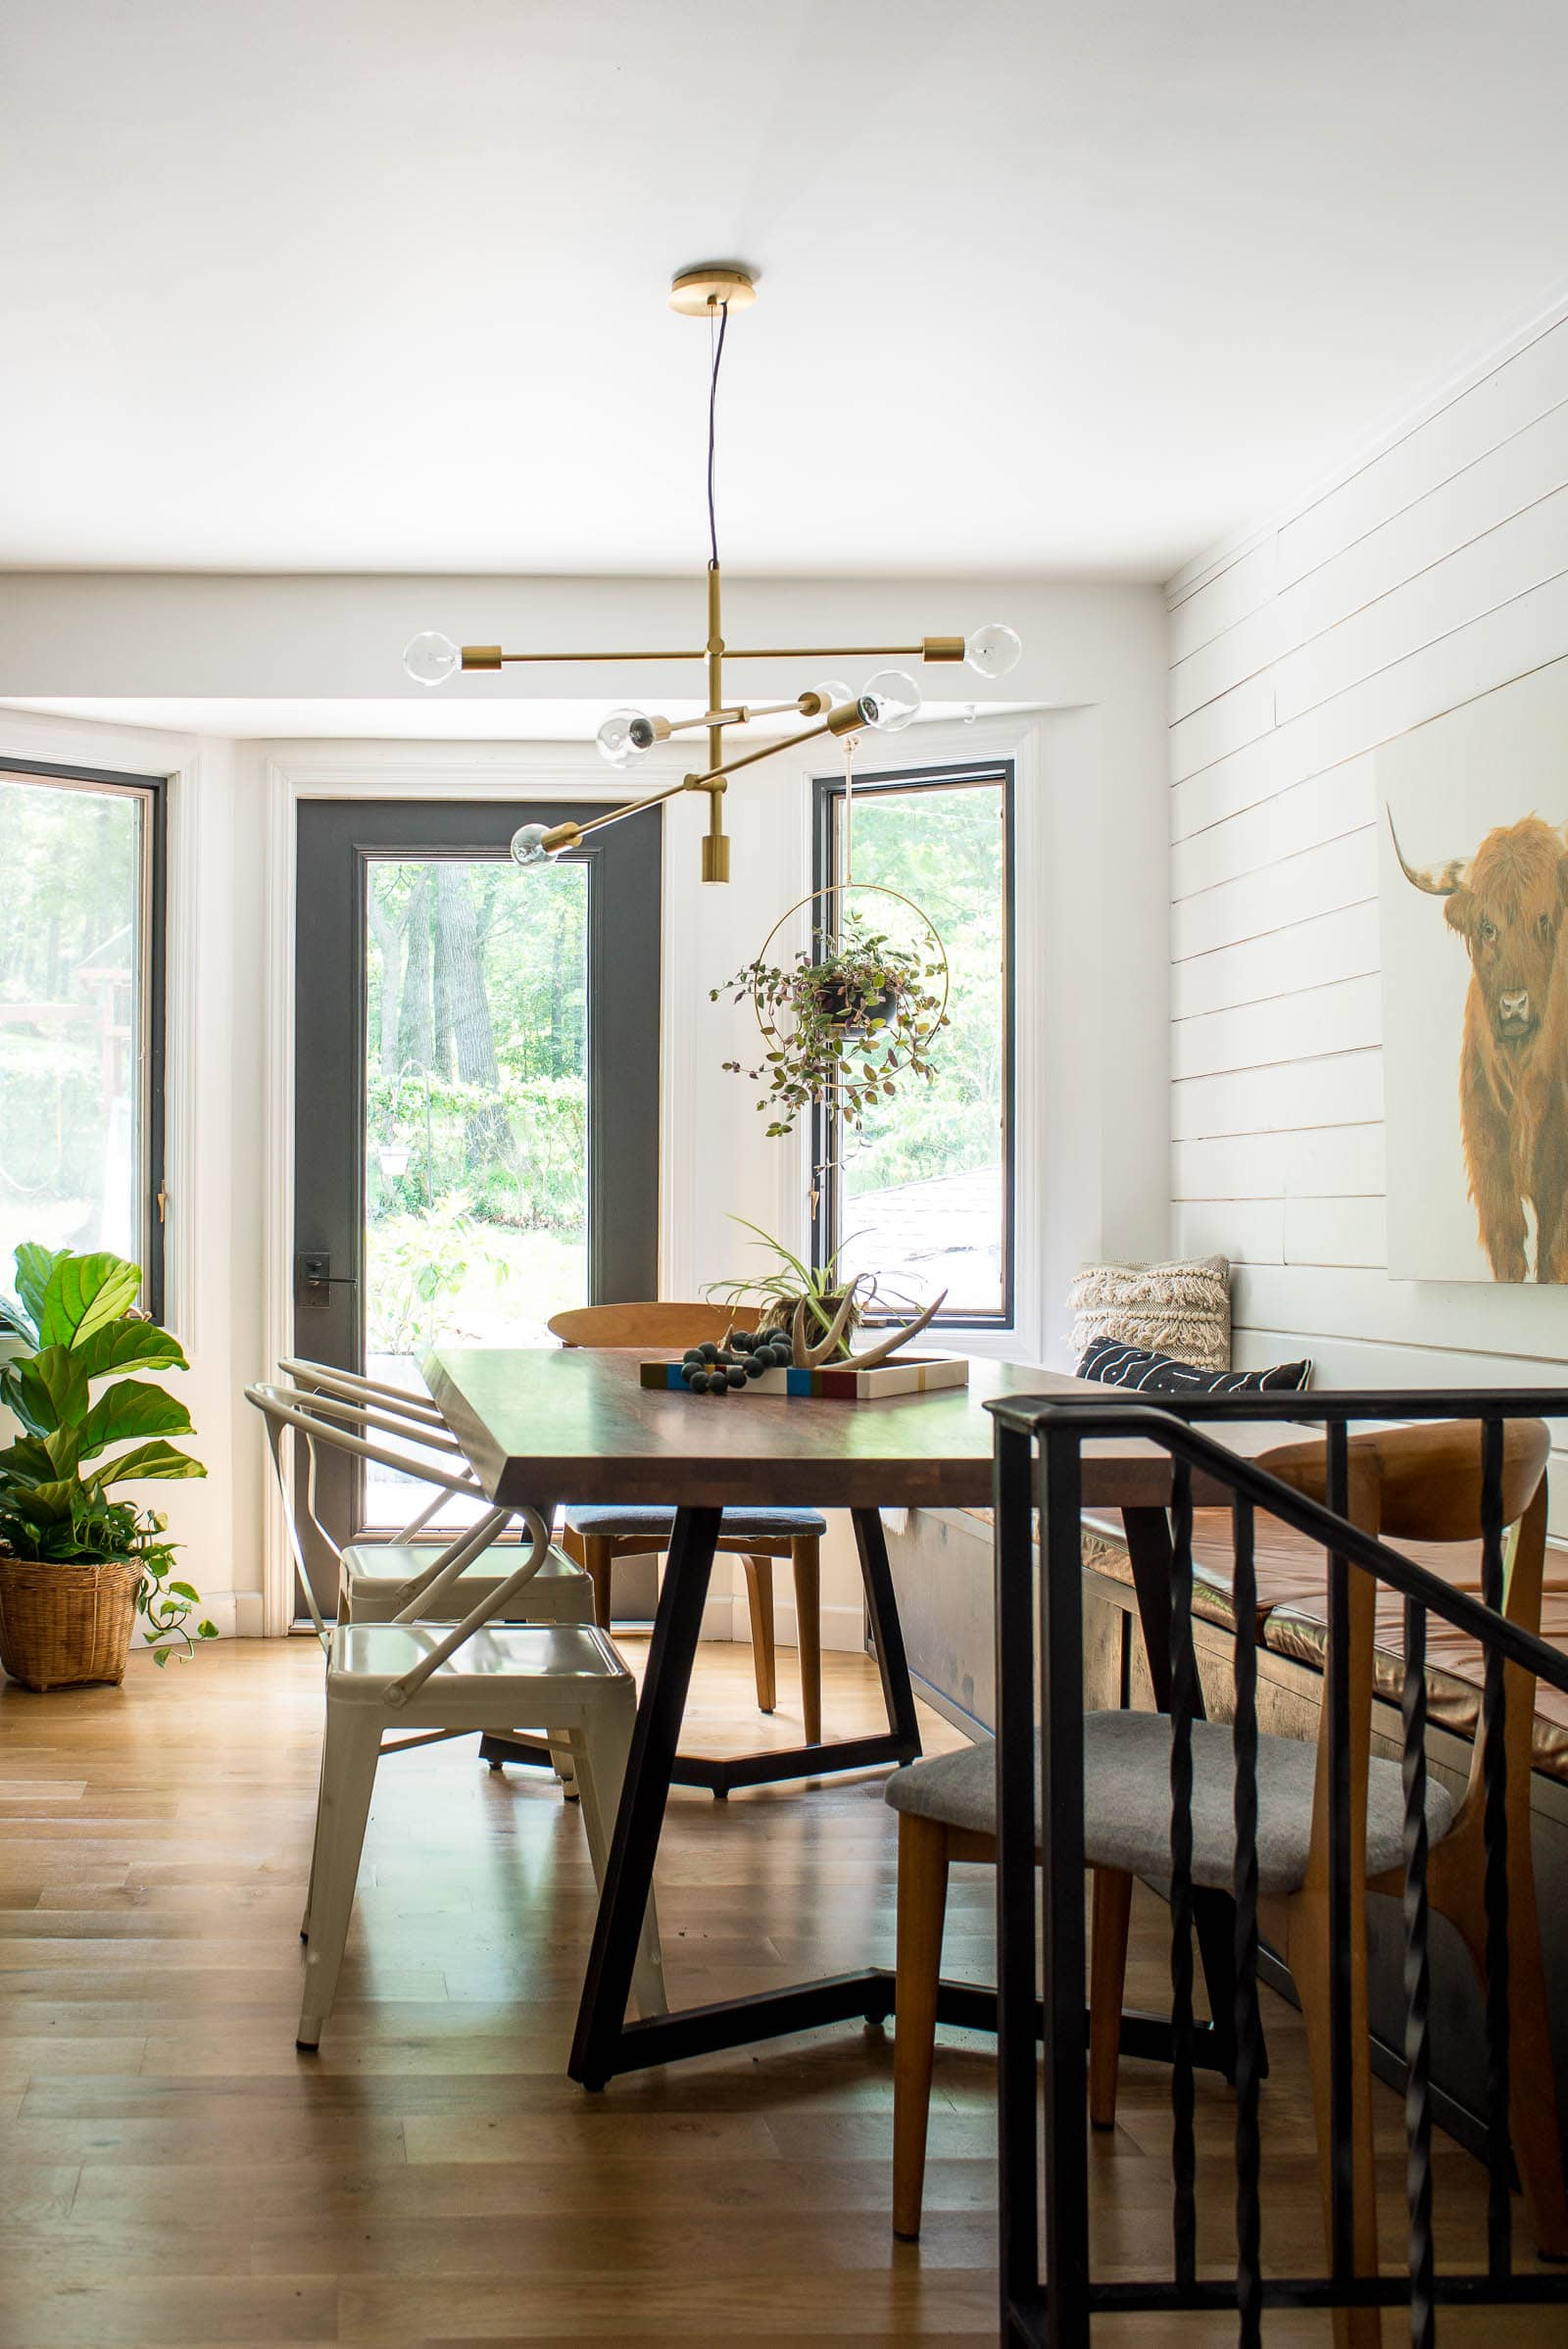 Eclectic eating space with shiplap, wood floors and a dining room table